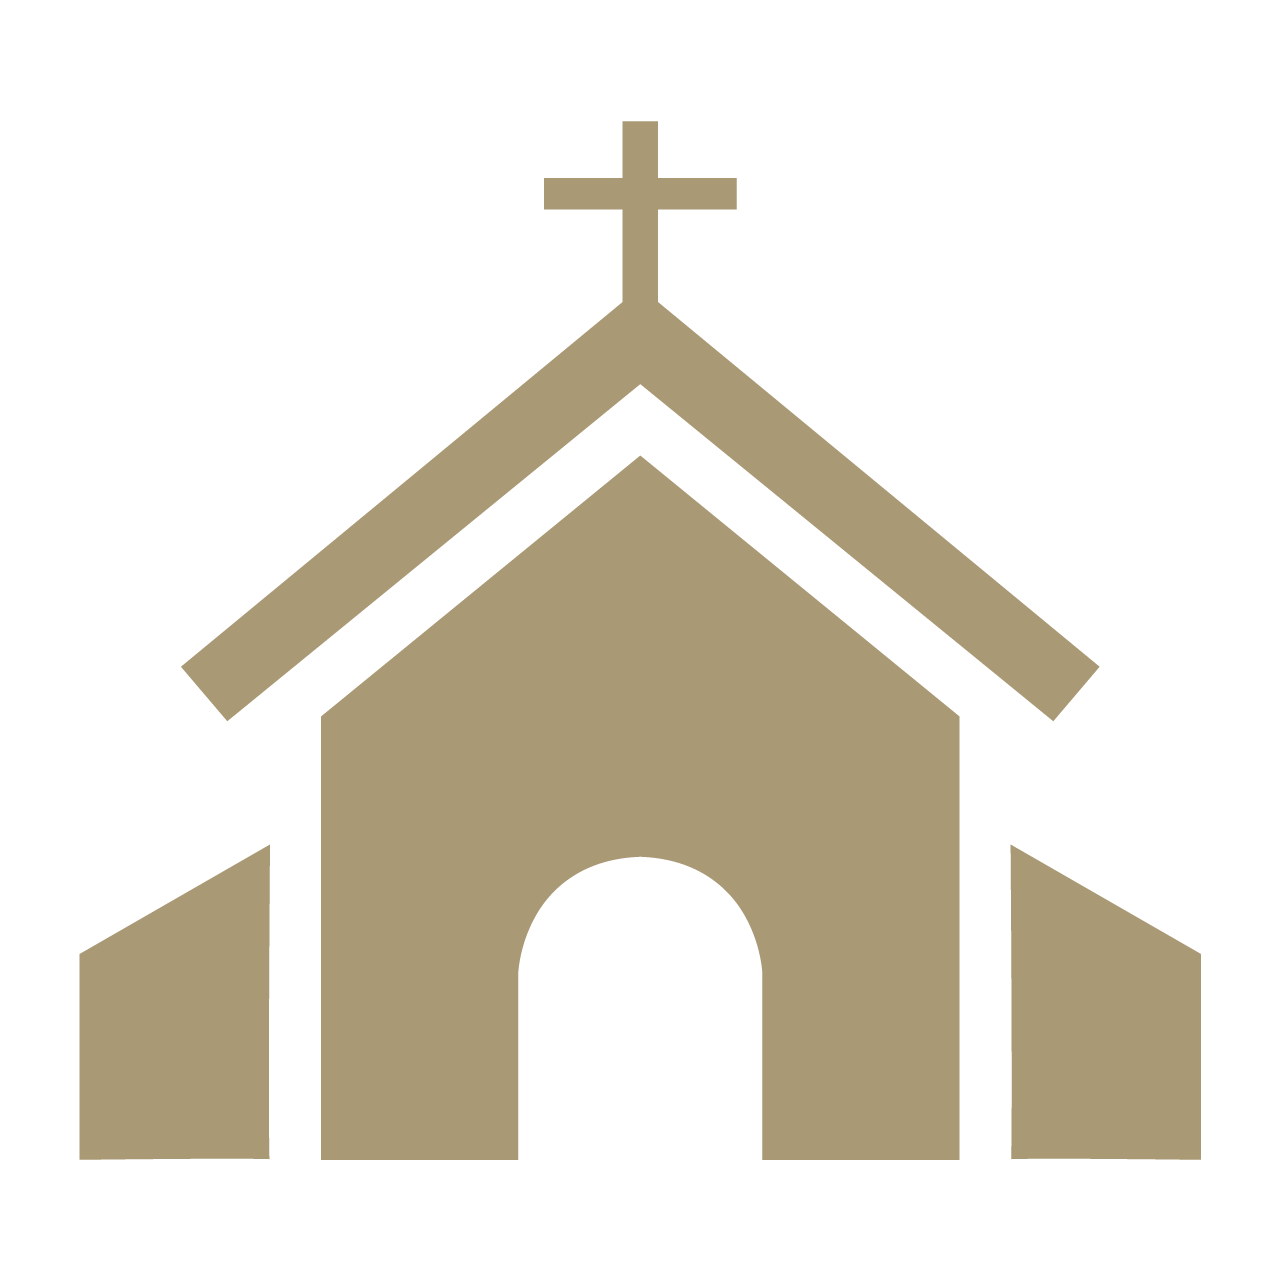 Churches Png & Free Churches.png Transparent Images #22244.